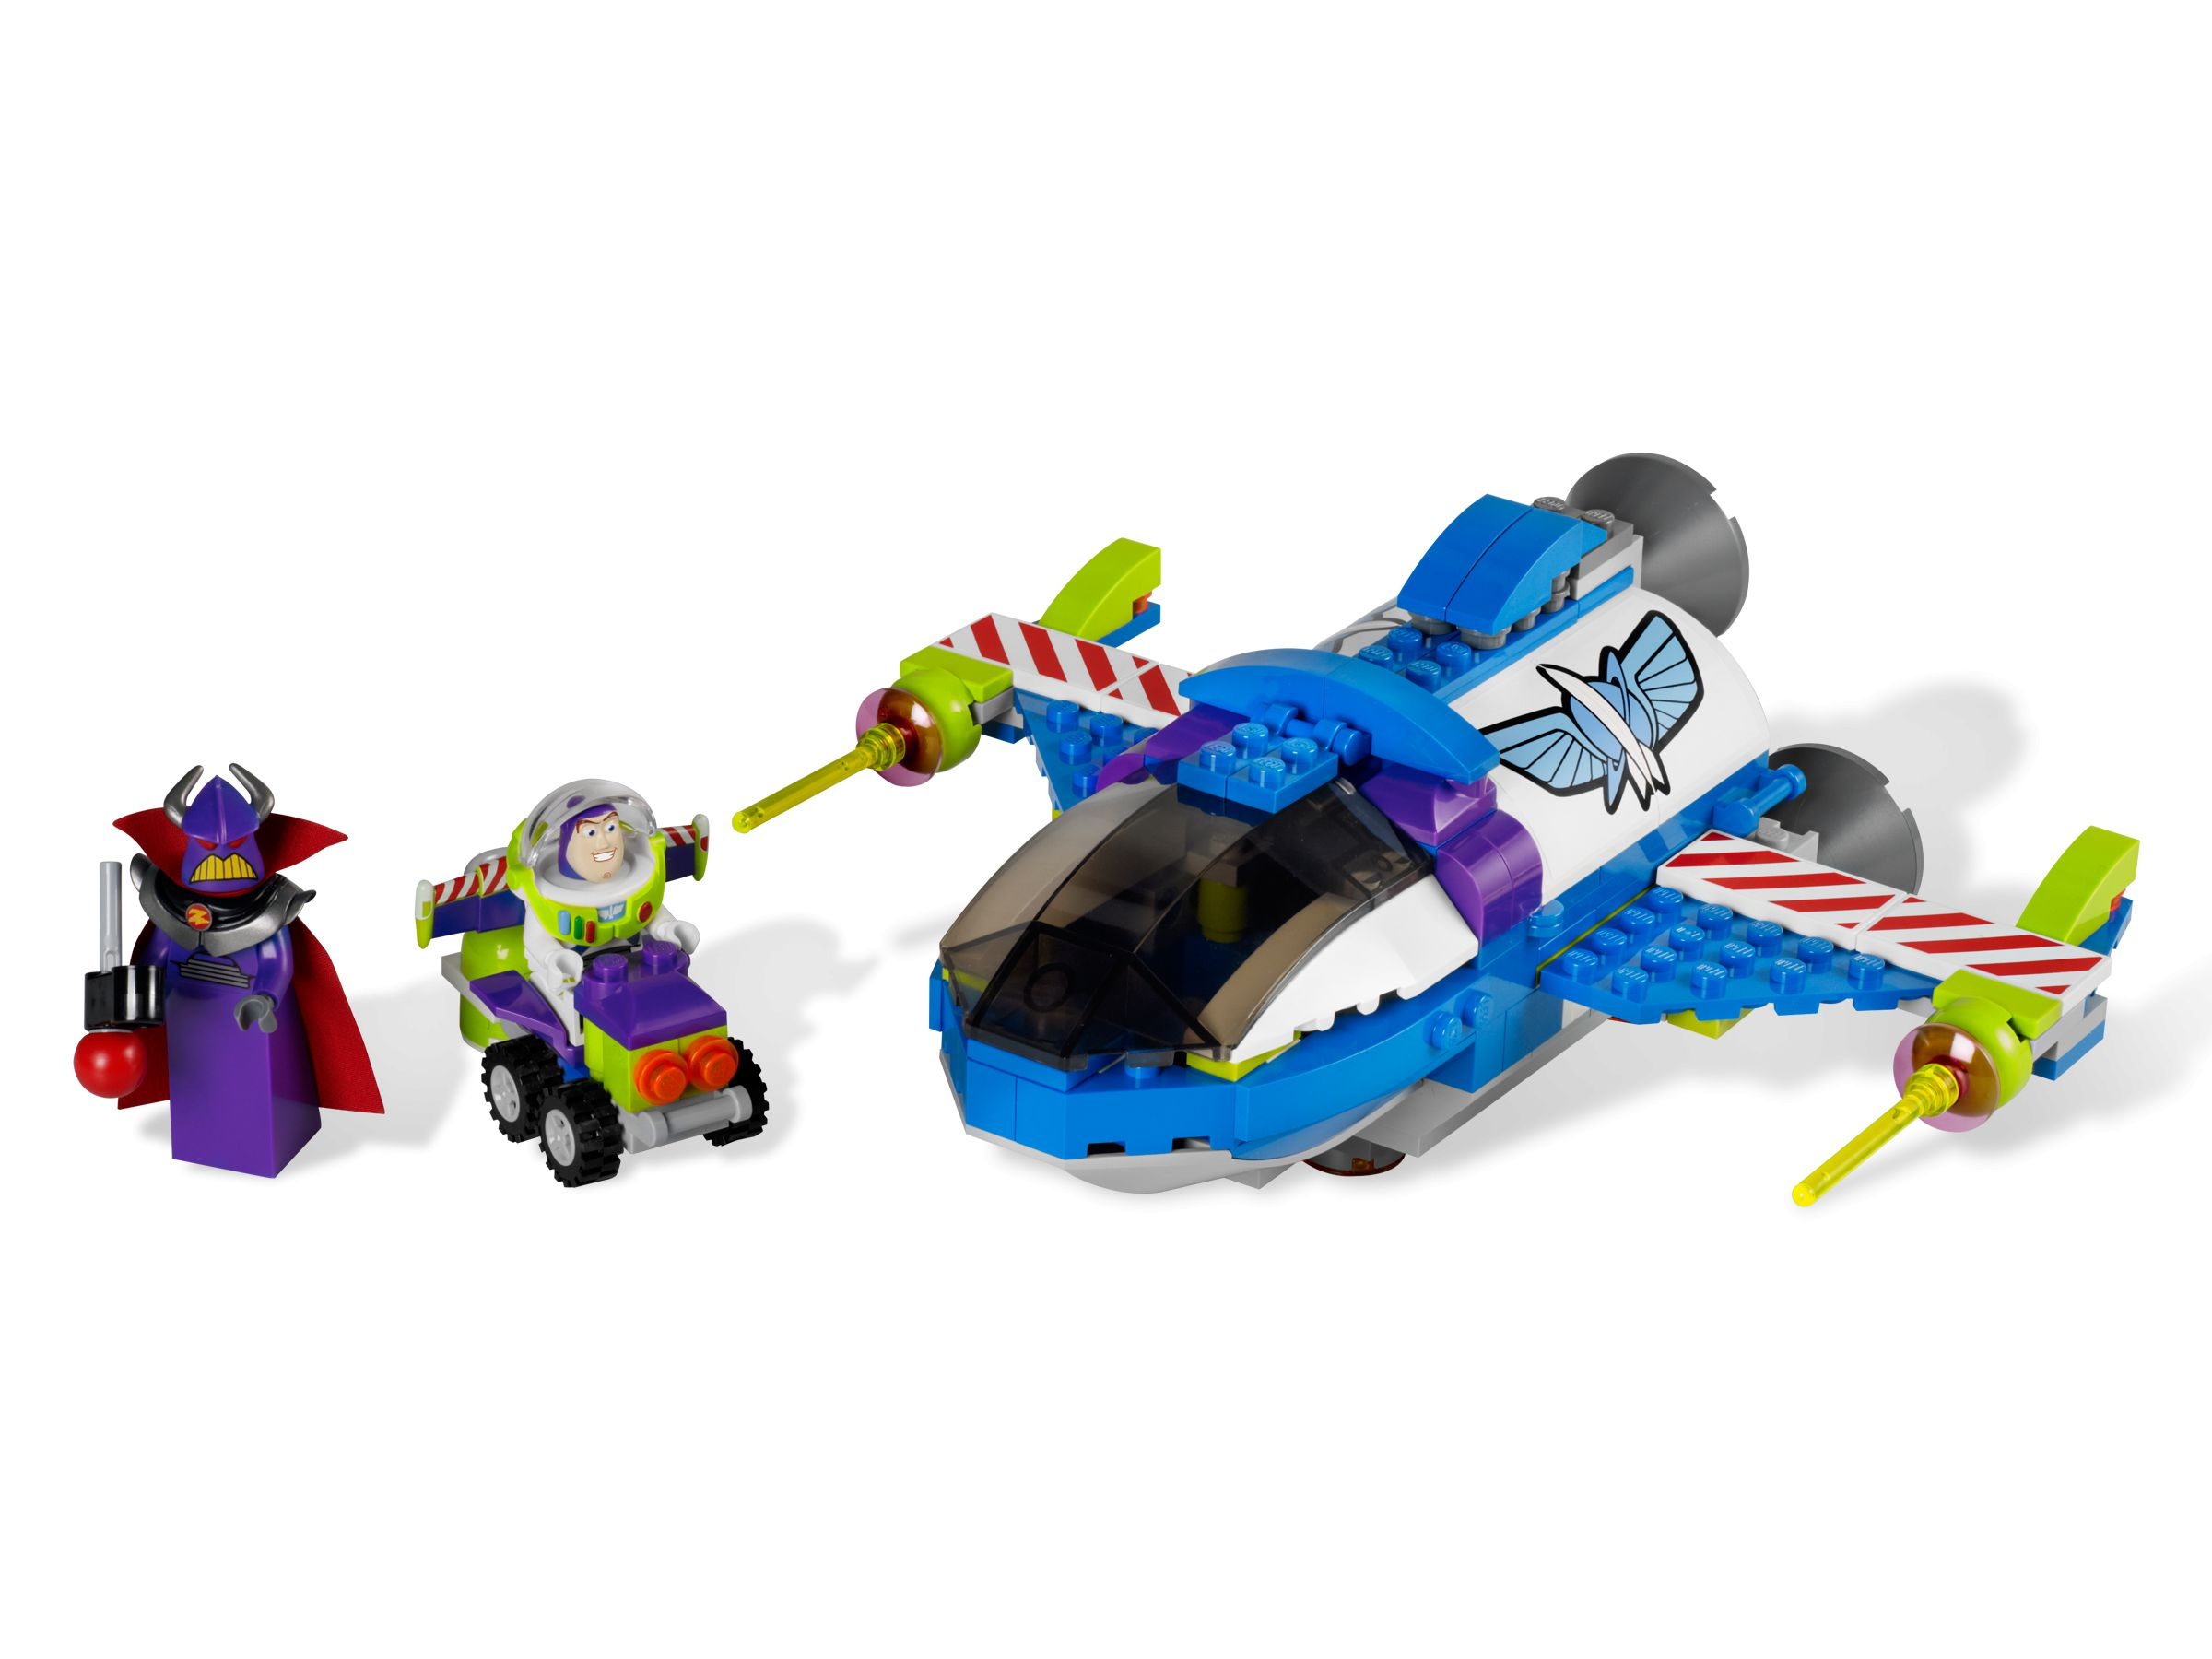 LEGO Toy Story 7593 Buzz's Star Command Spaceship LEGO_7593.jpg